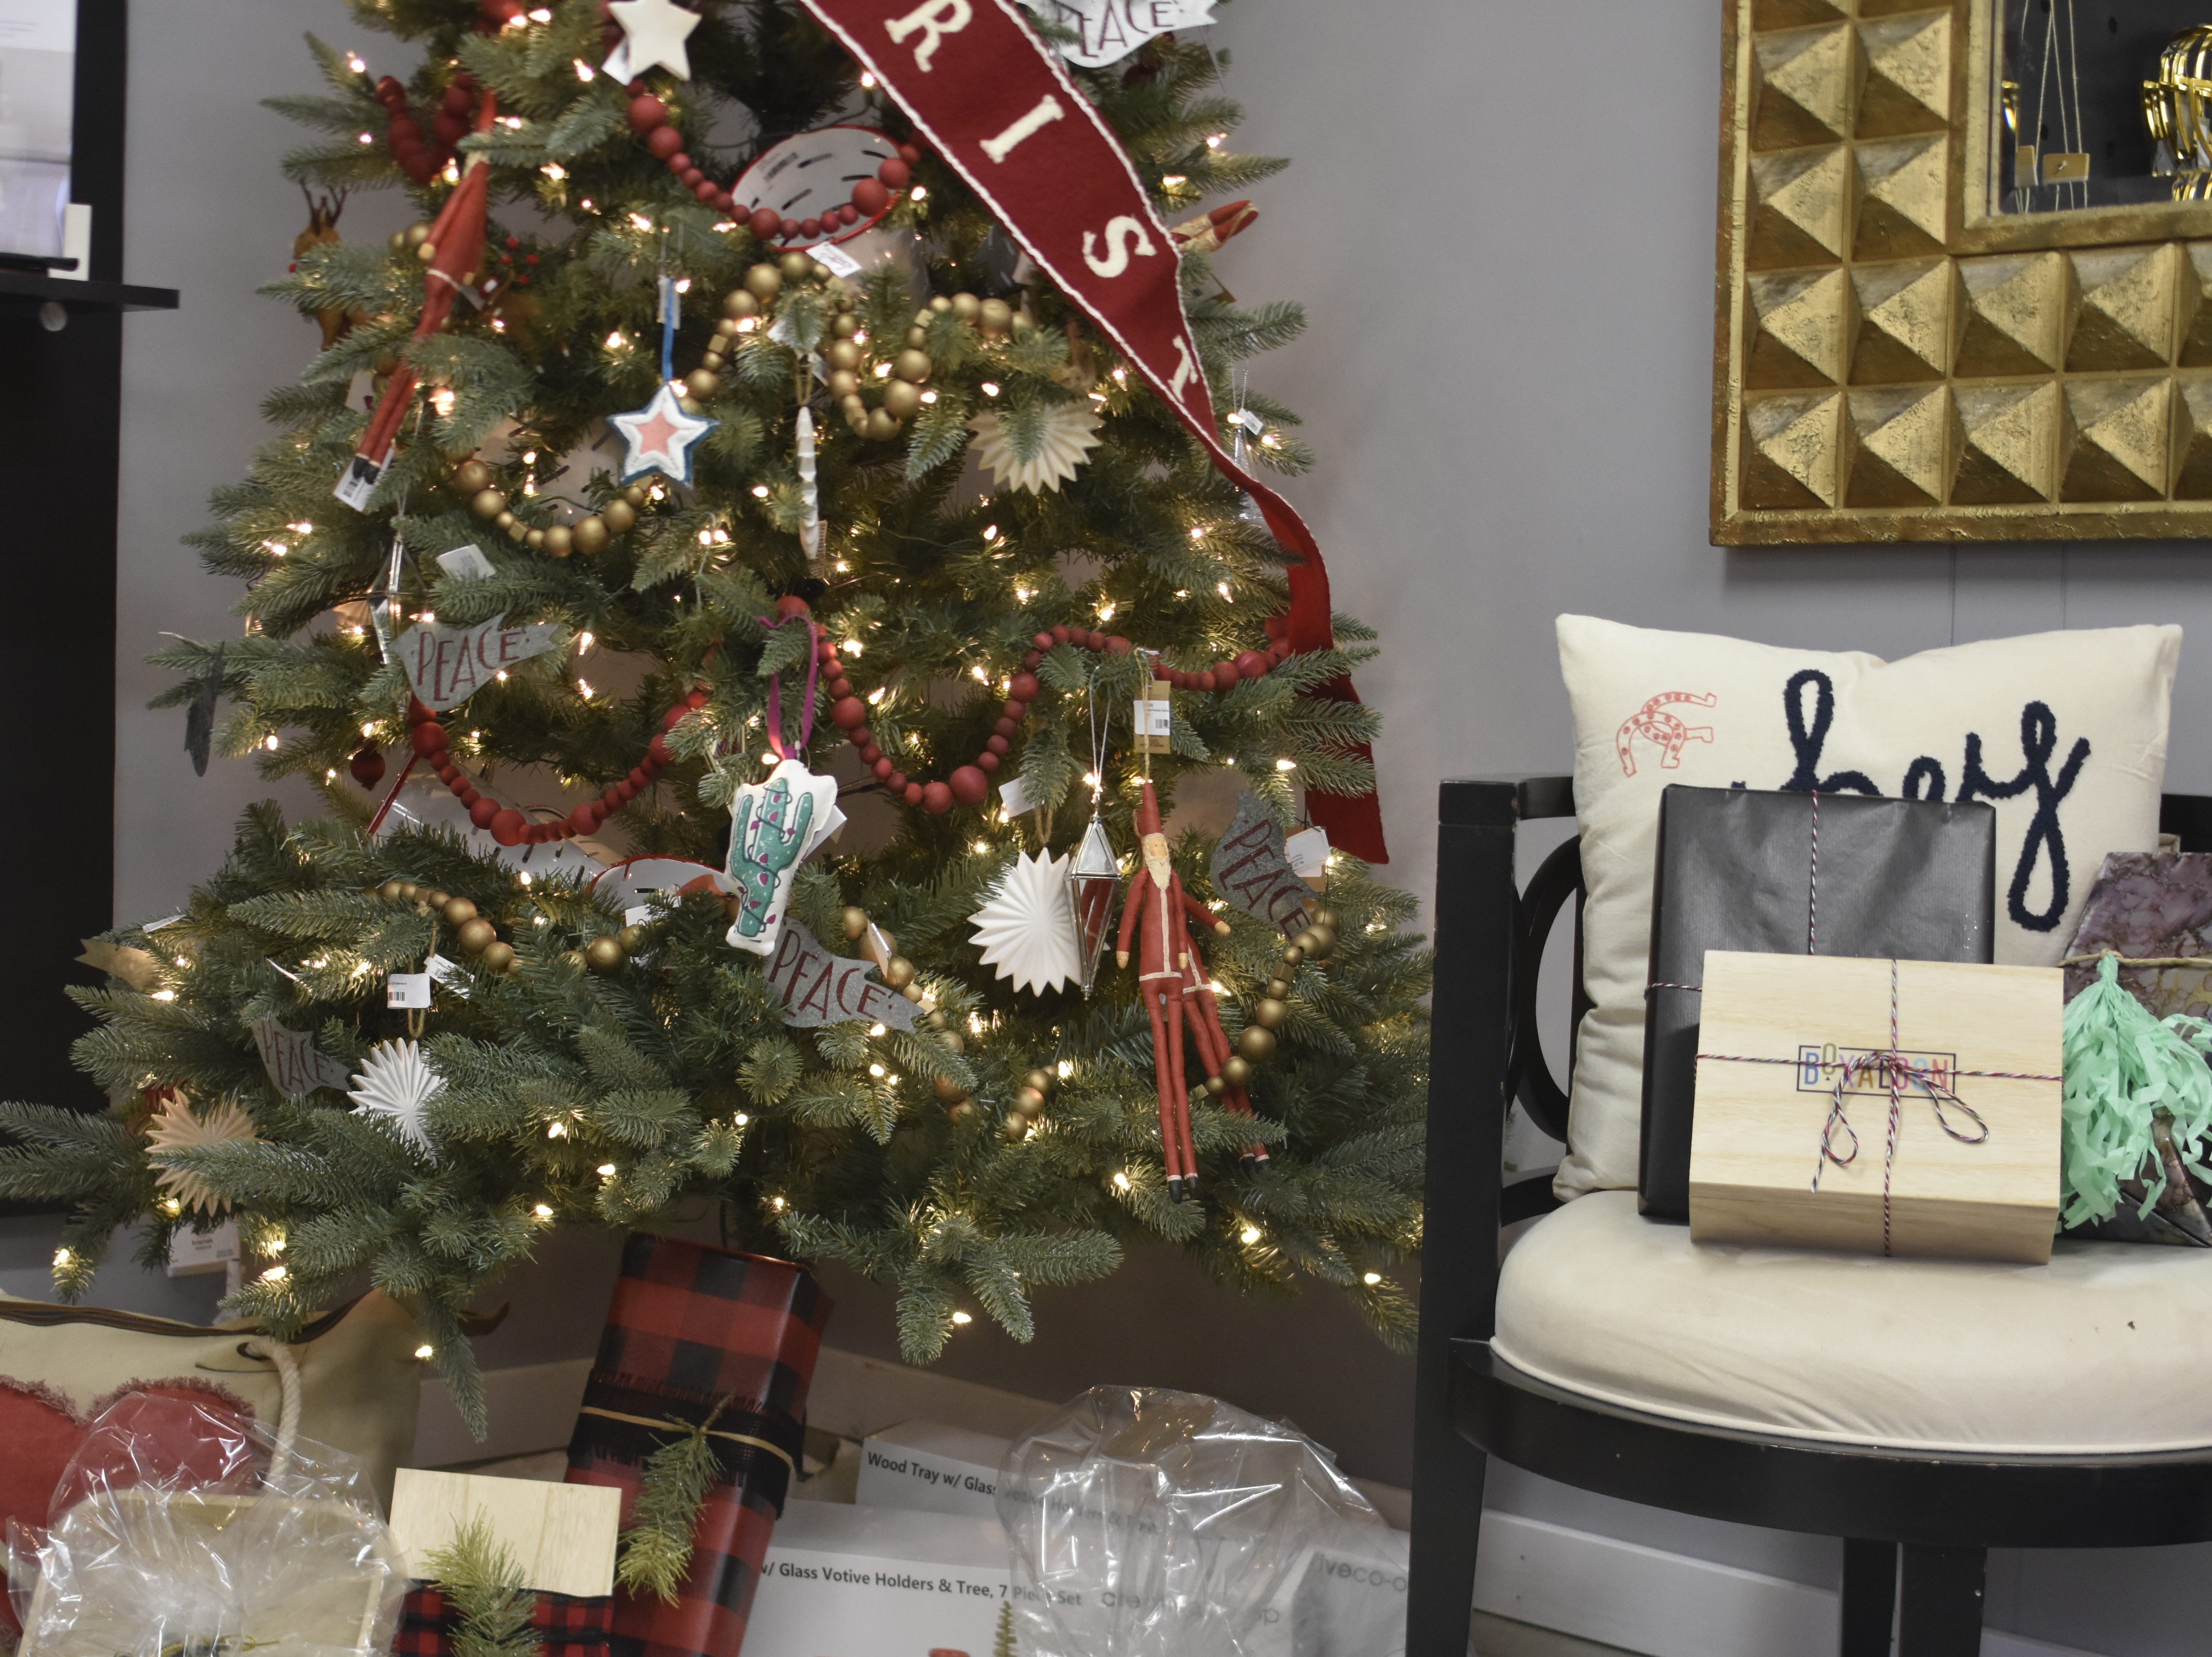 Boxaloon is open from 10 a.m. to 5 p.m. from Monday through Saturday. Find the gift boutique at 606 N. Main St., or on Facebook and Instagram @Boxaloon.